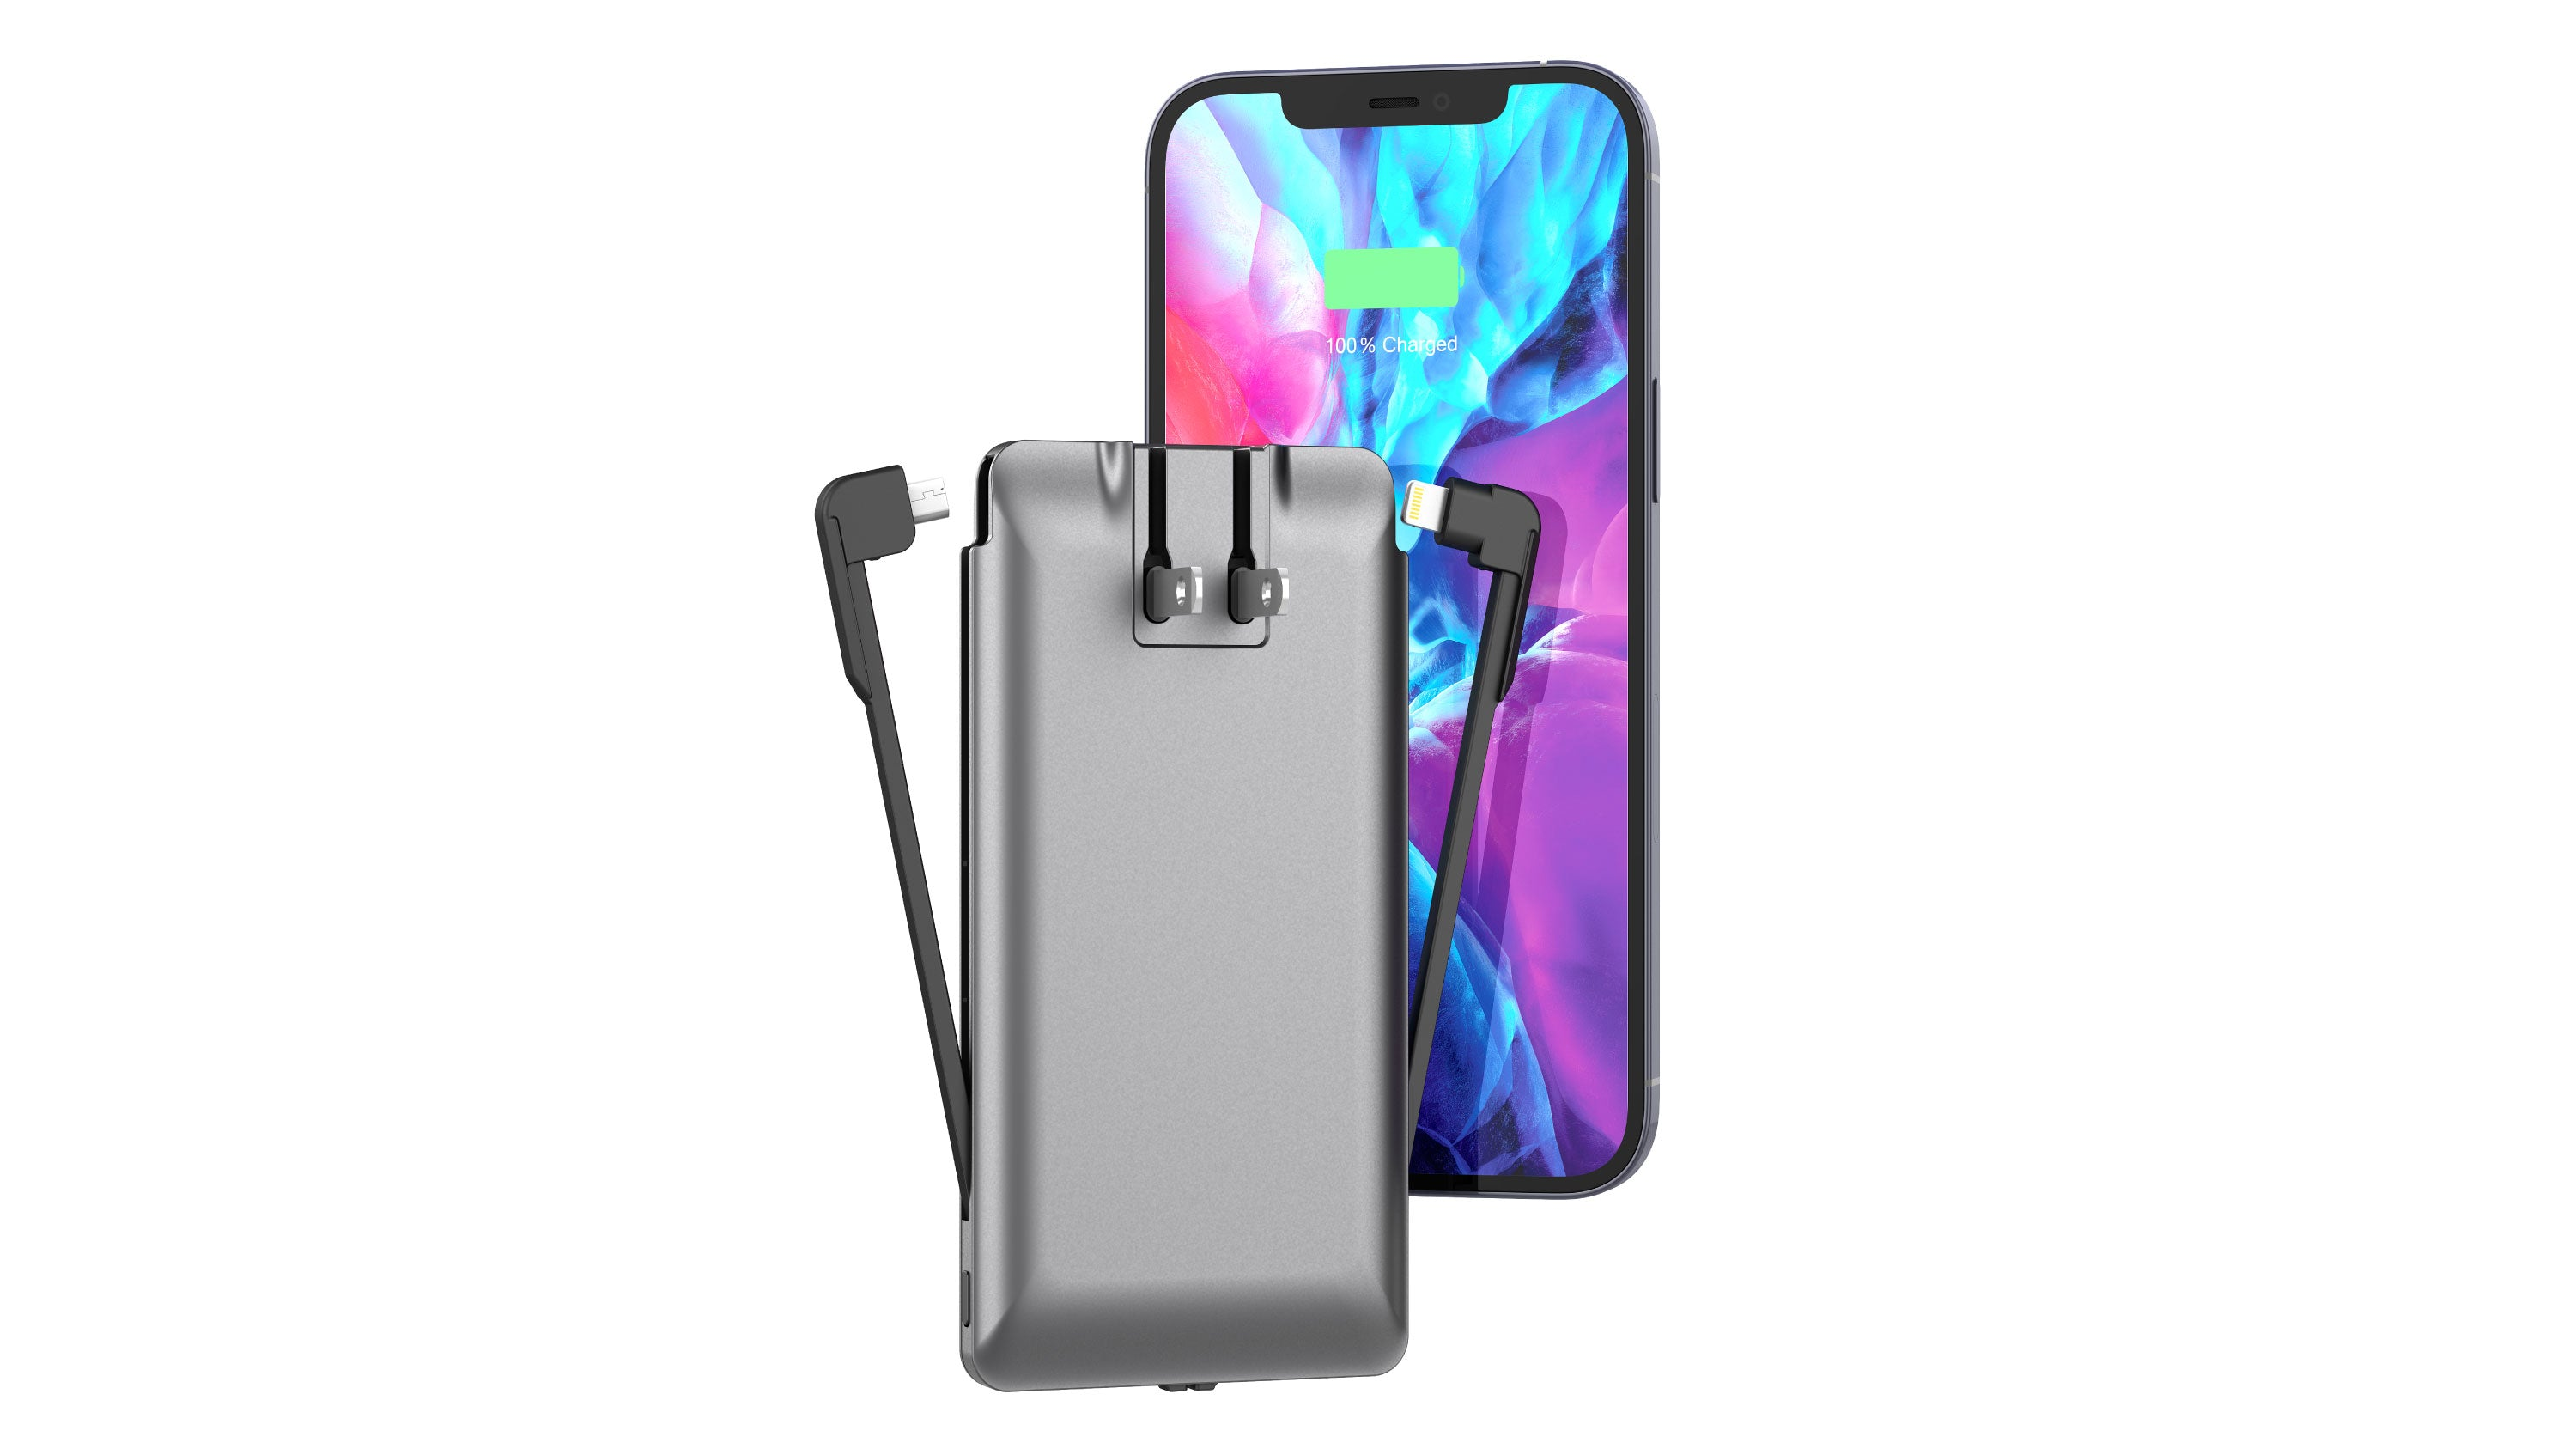 Journey Charger | Portable Power Bank, Cables & Wall Plug | for iPhone & Smartphones